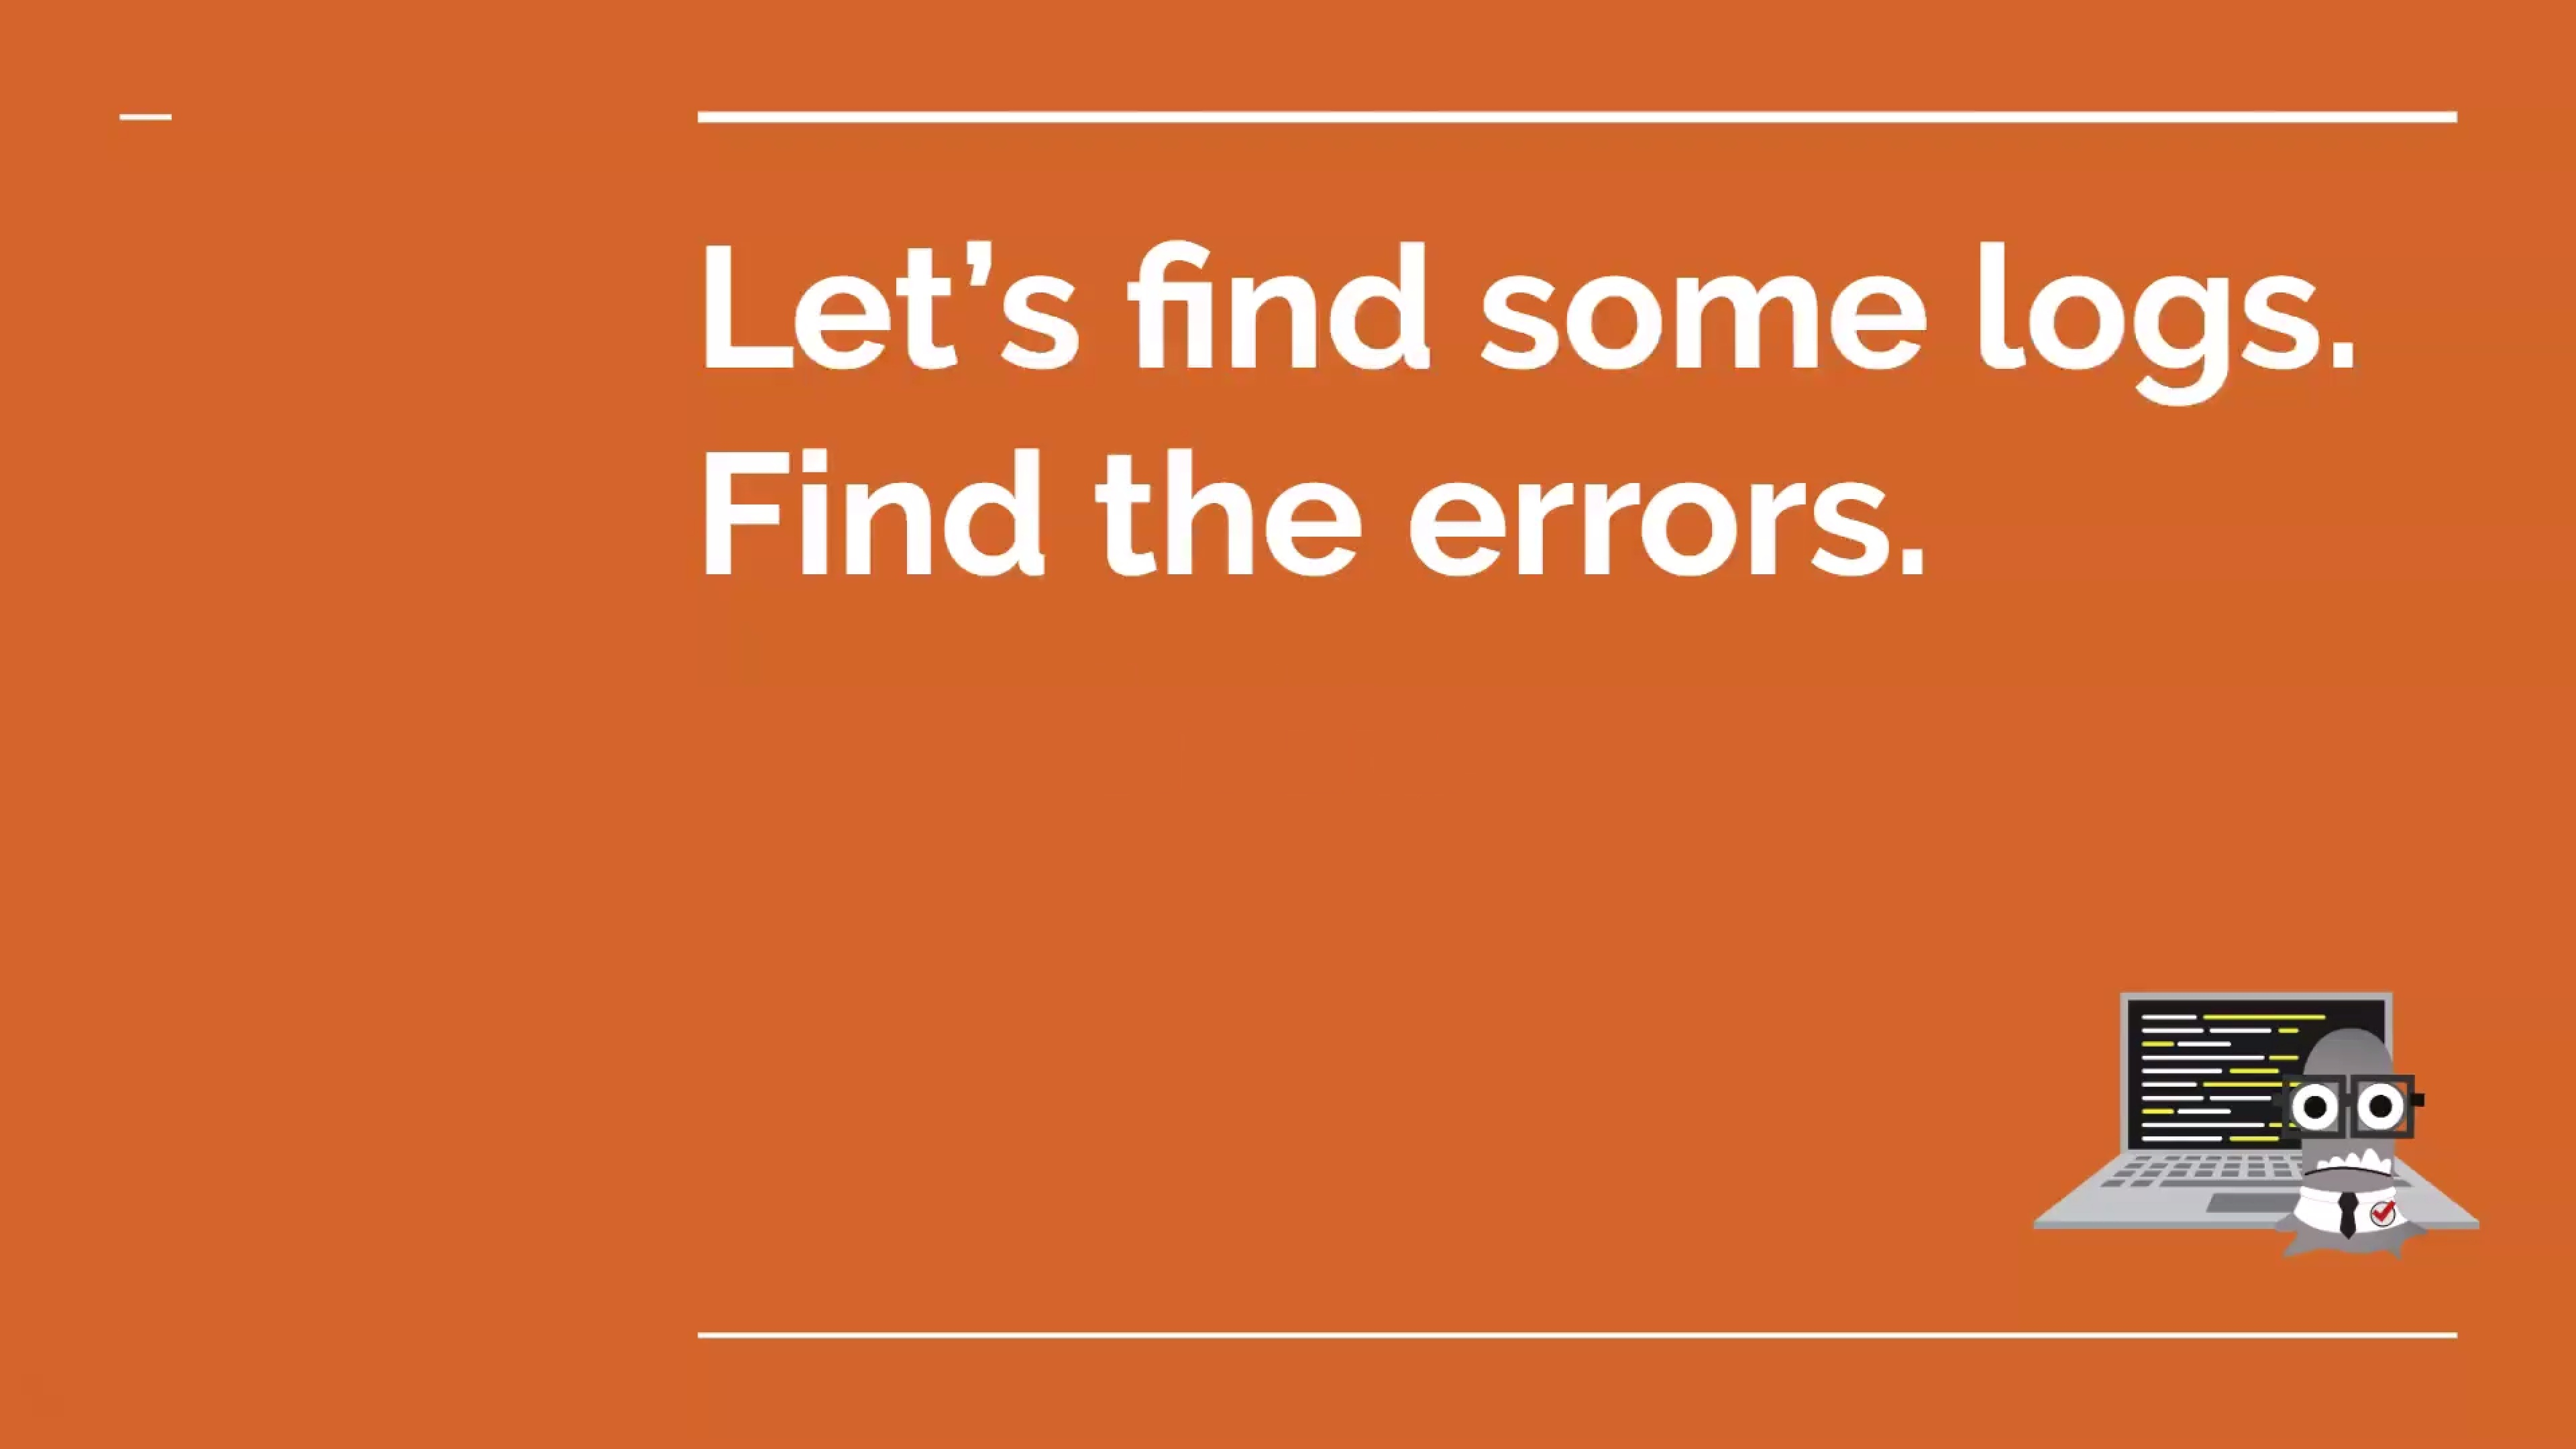 Find Some Logs. Find the Errors.